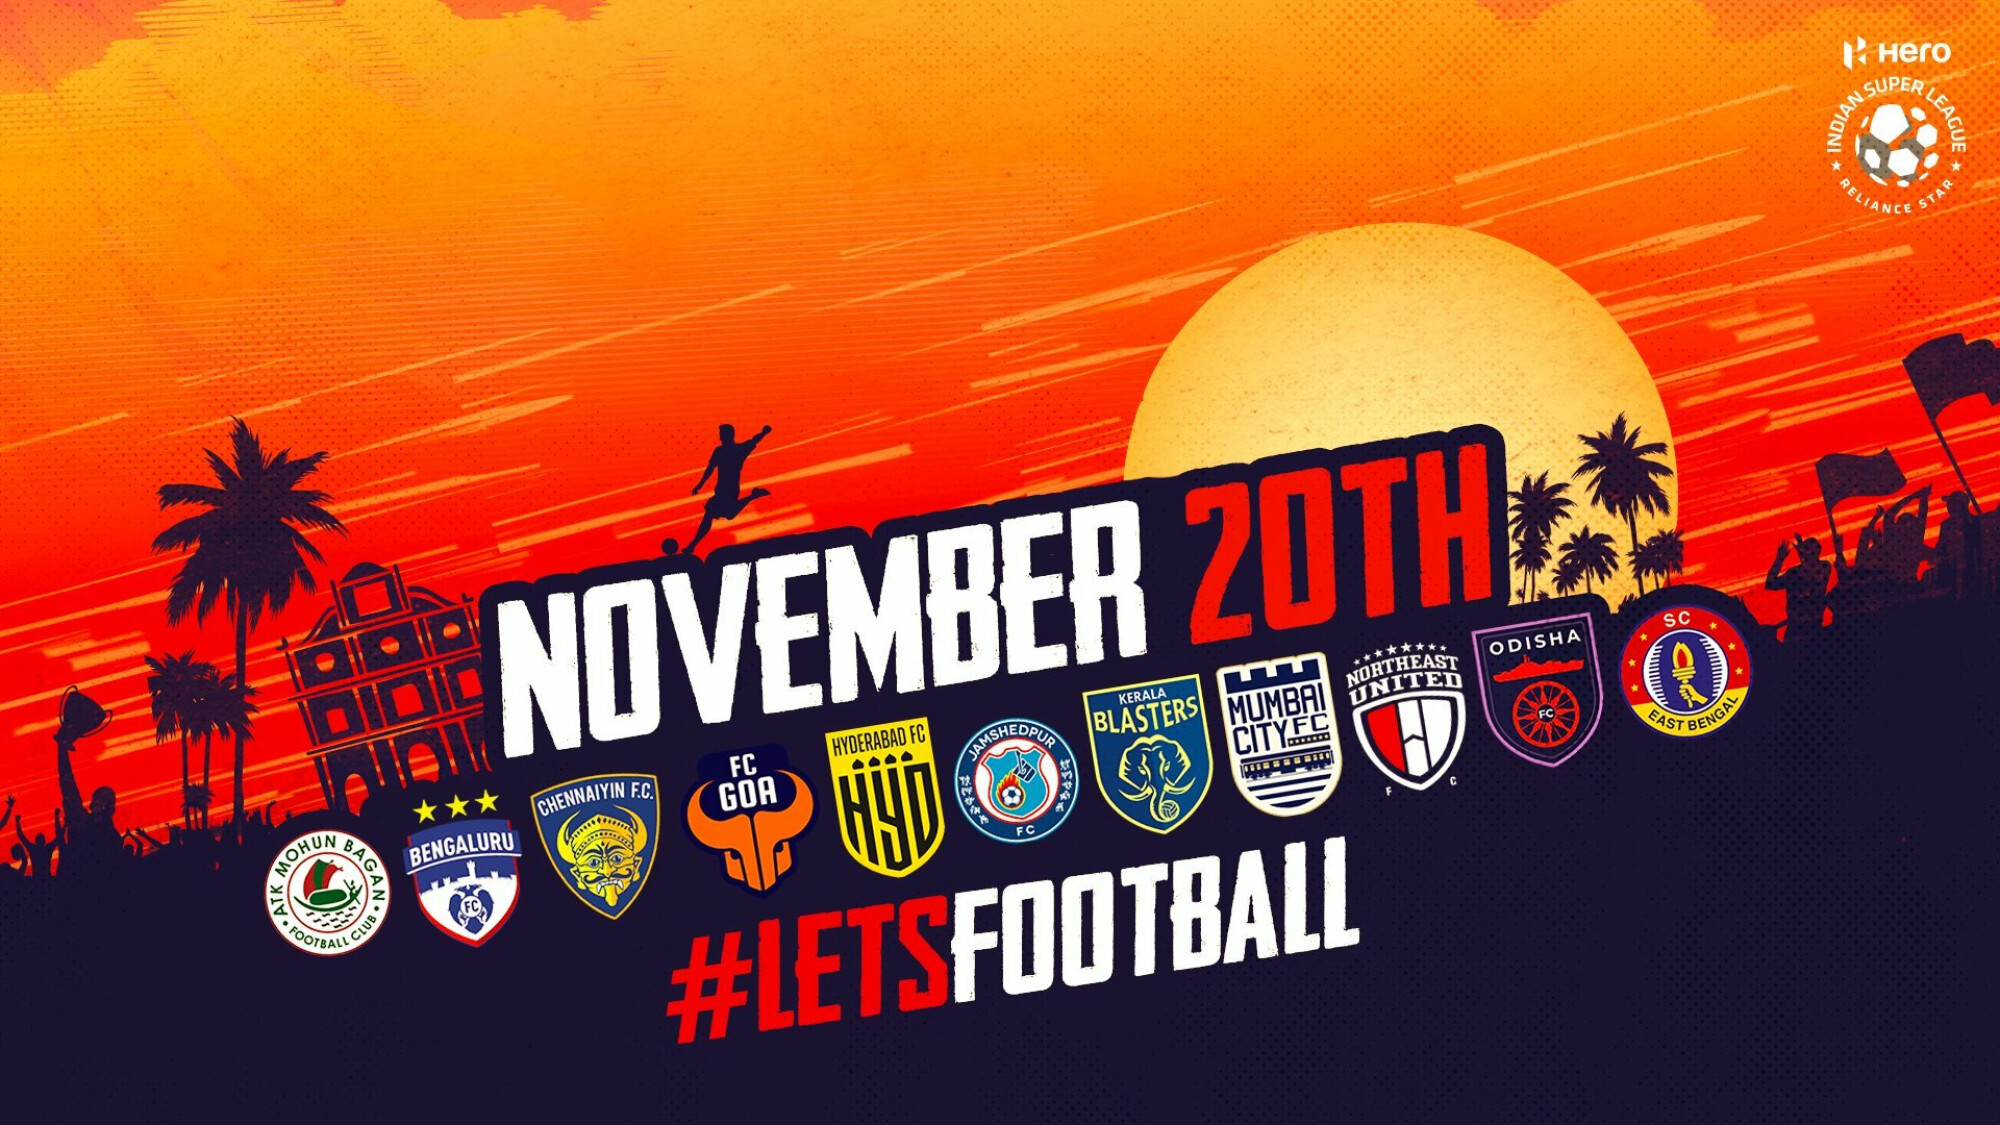 Indian Super League to begin in mid-November.